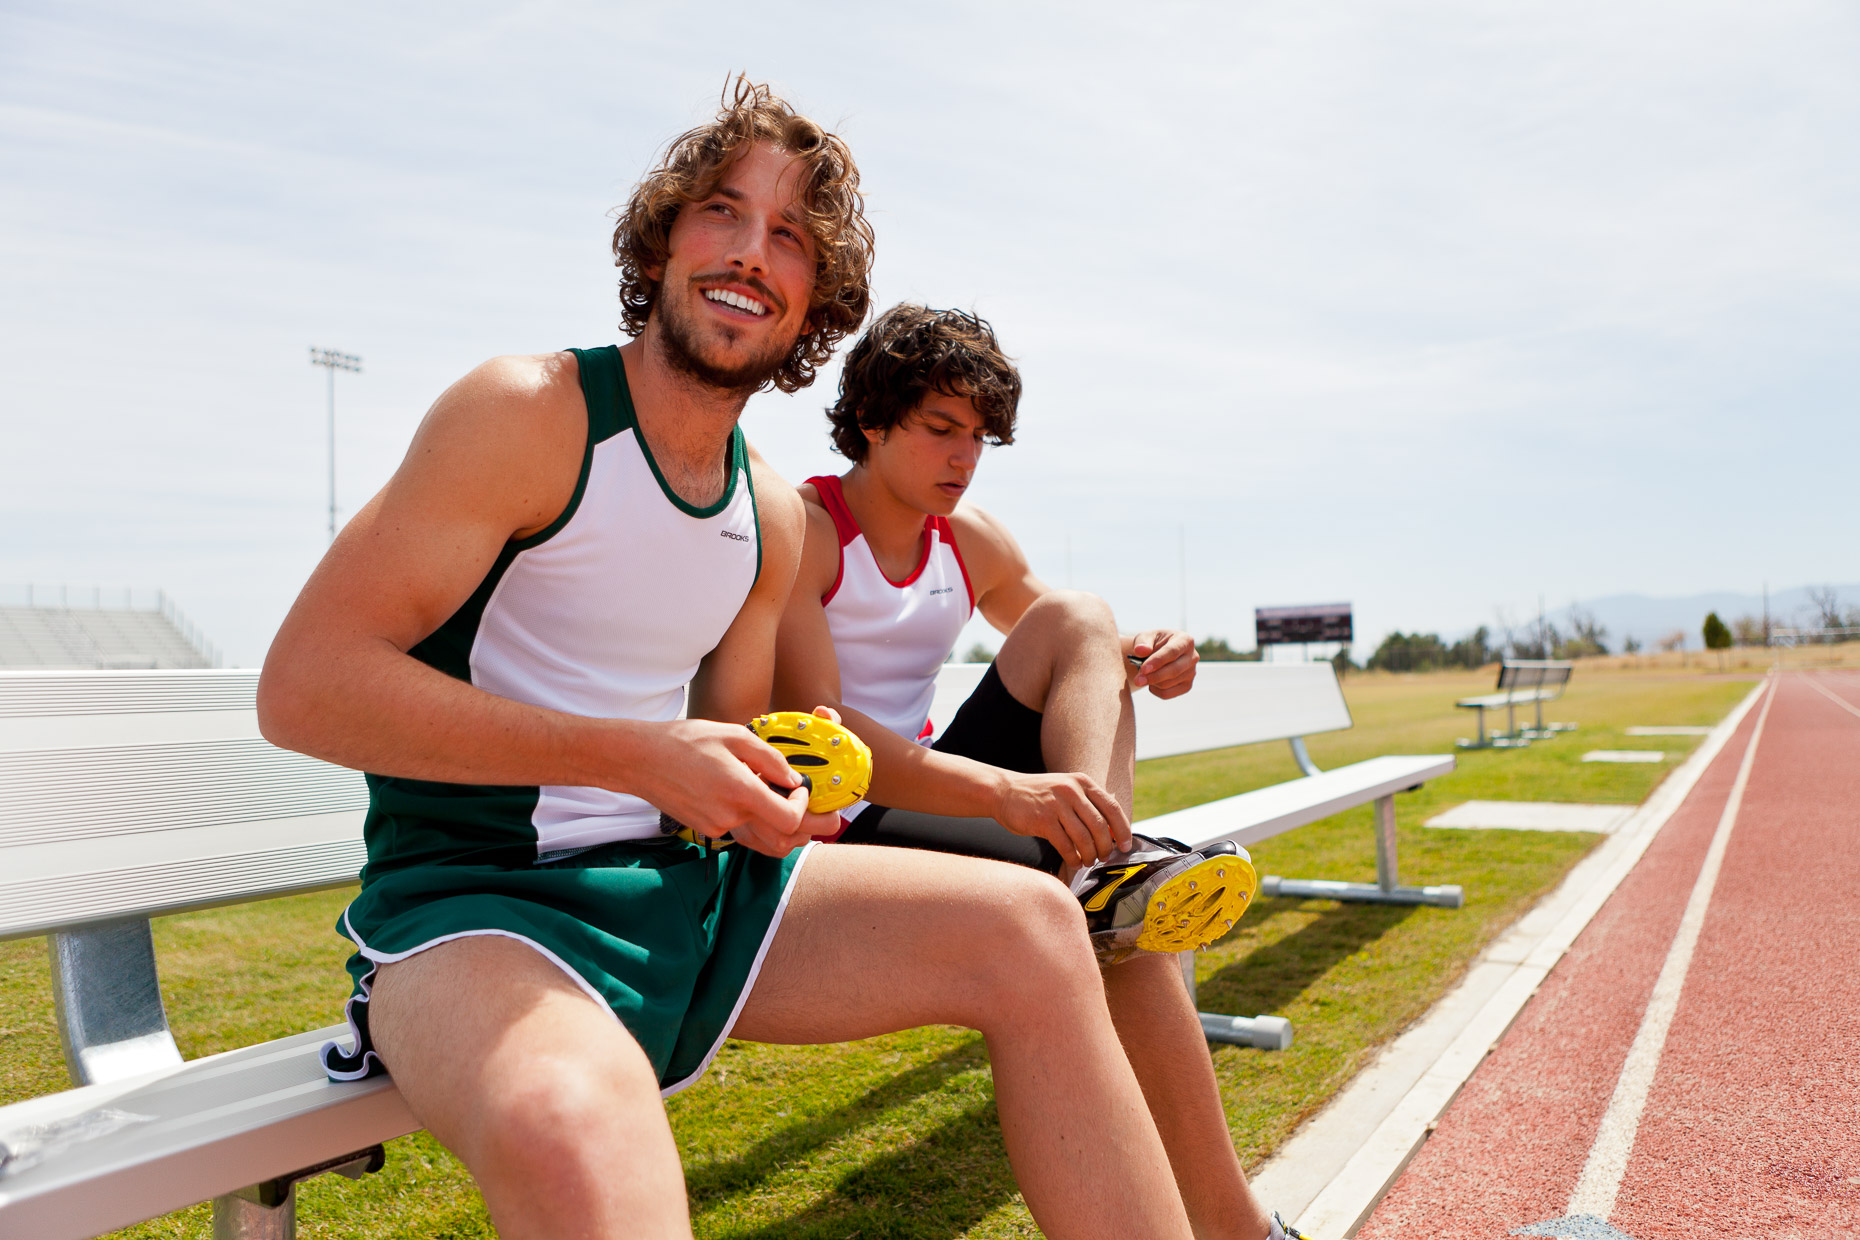 Male runners sitting on track field bench adjusting cleats on shoes in Palm Springs, California by David Zaitz Photography.